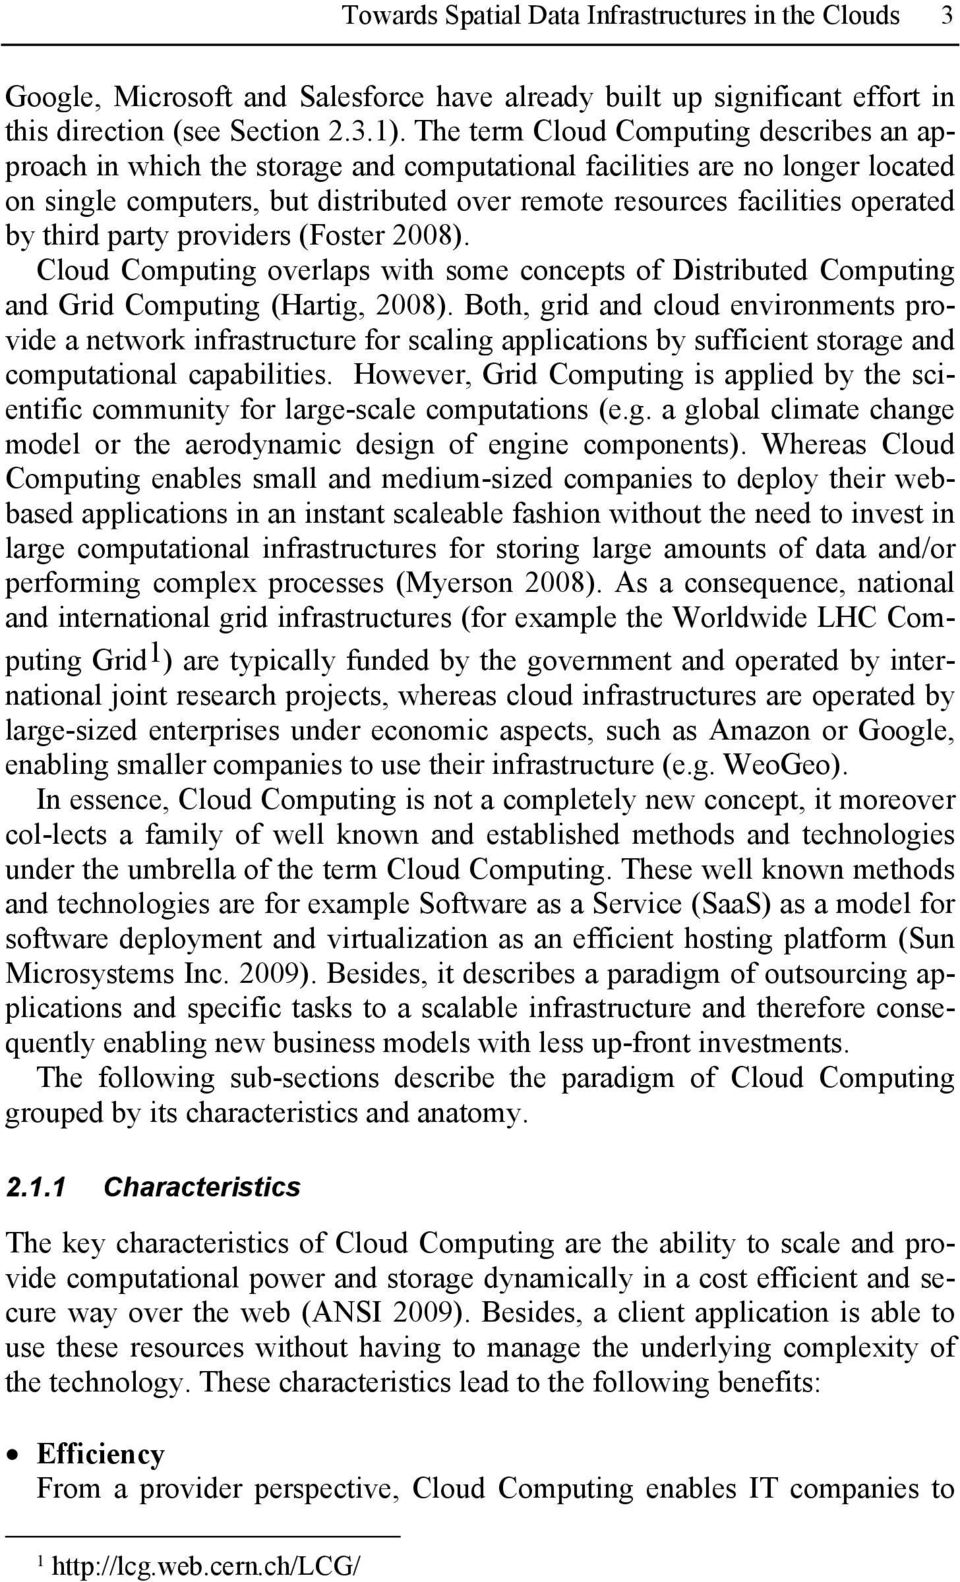 by third party providers (Foster 2008). Cloud Computing overlaps with some concepts of Distributed Computing and Grid Computing (Hartig, 2008).